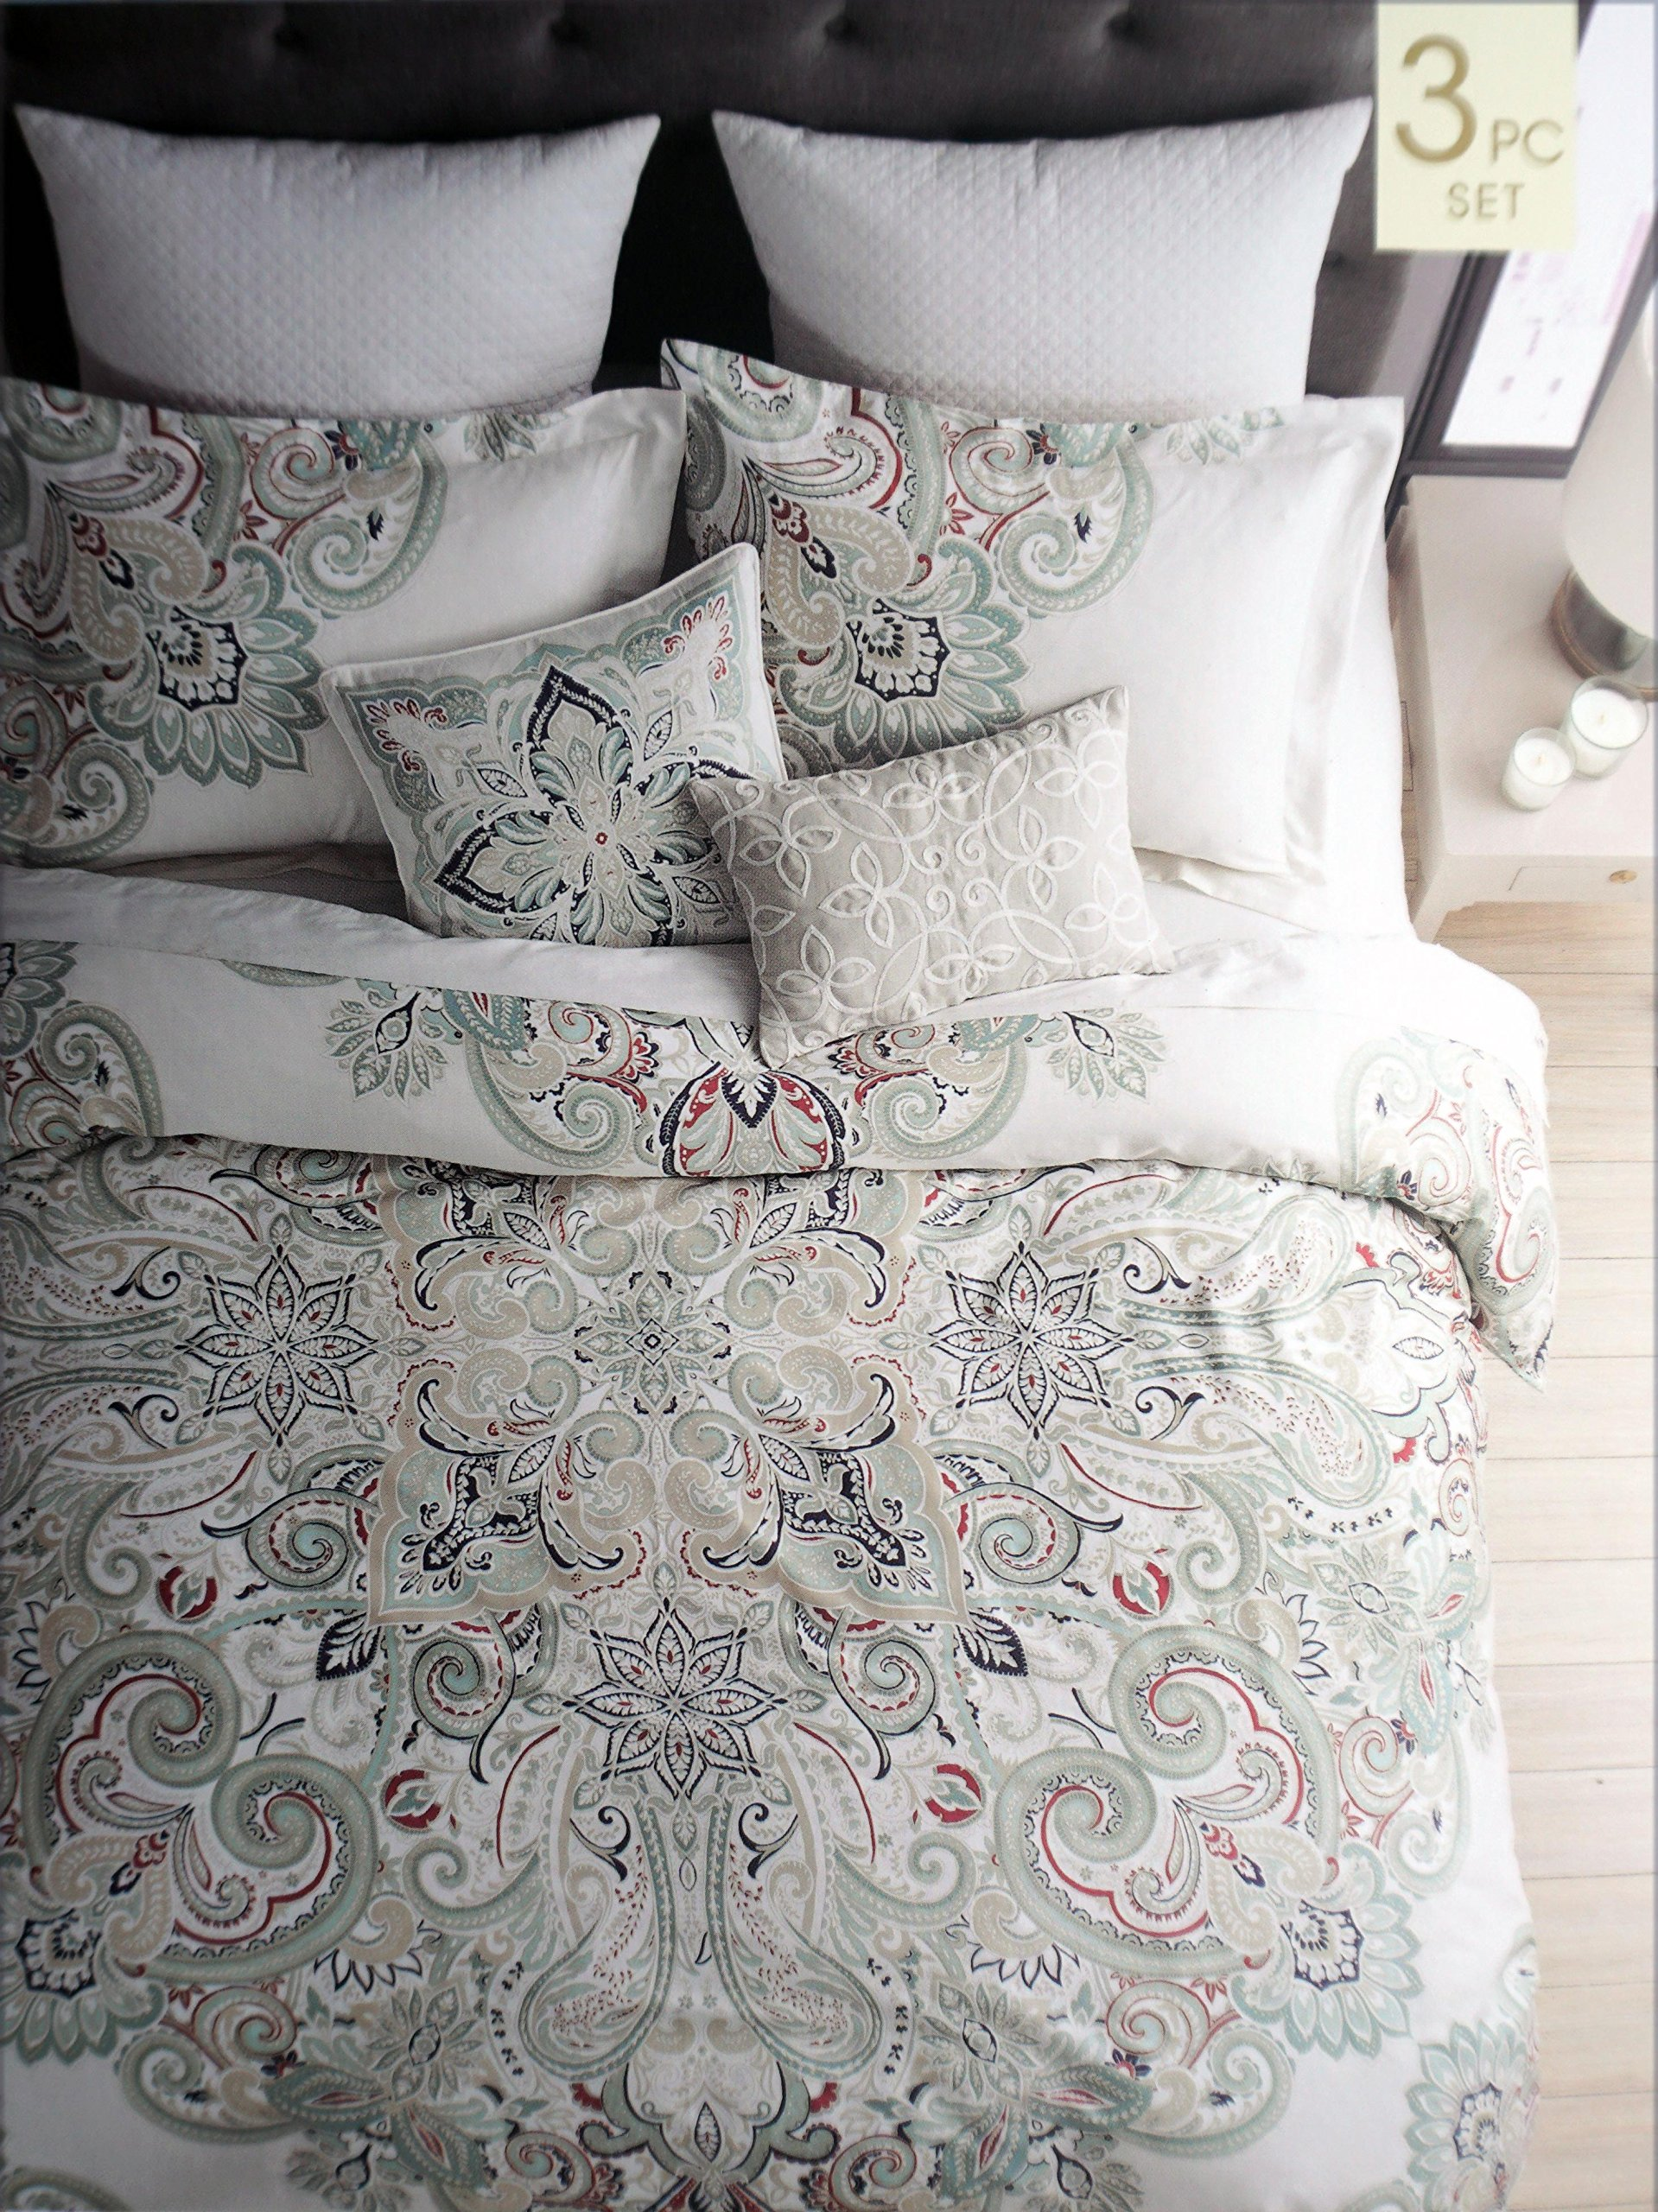 Get Quotations · Cynthia Rowley Bedding 3 Piece King Duvet Cover Set  Geometric Large Medallion Pattern In Shades Of